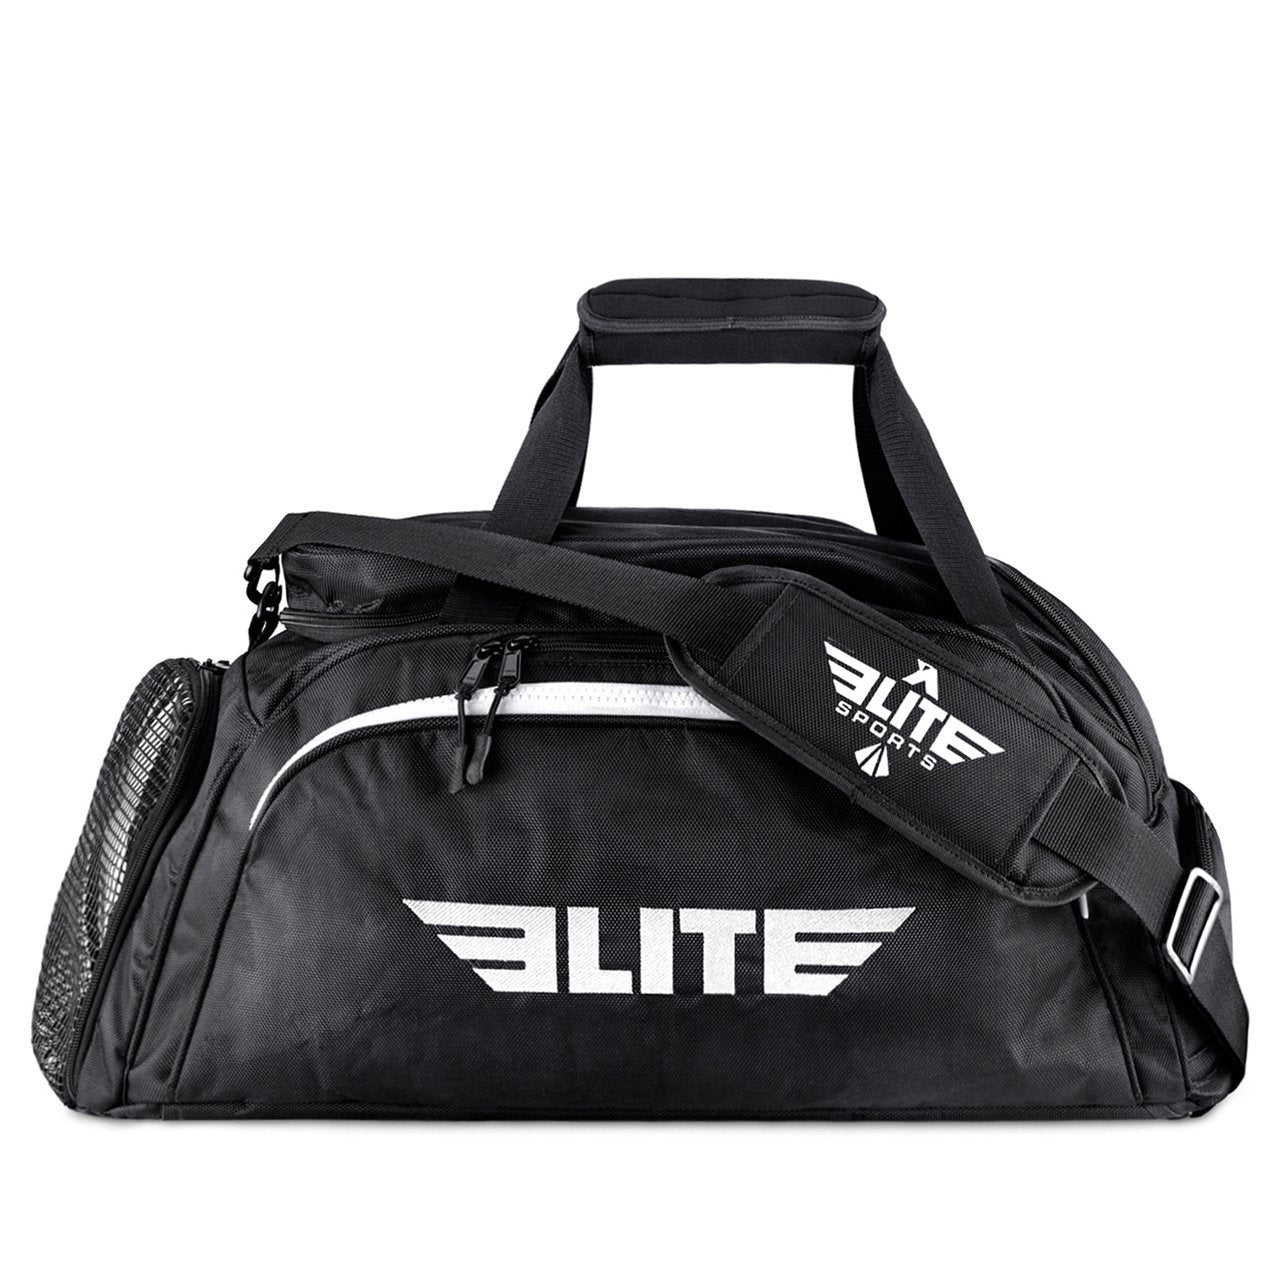 Load image into Gallery viewer, Elite Sports Warrior Series Large Boxing MMA BJJ Gear Gym Duffel Bag & Backpack